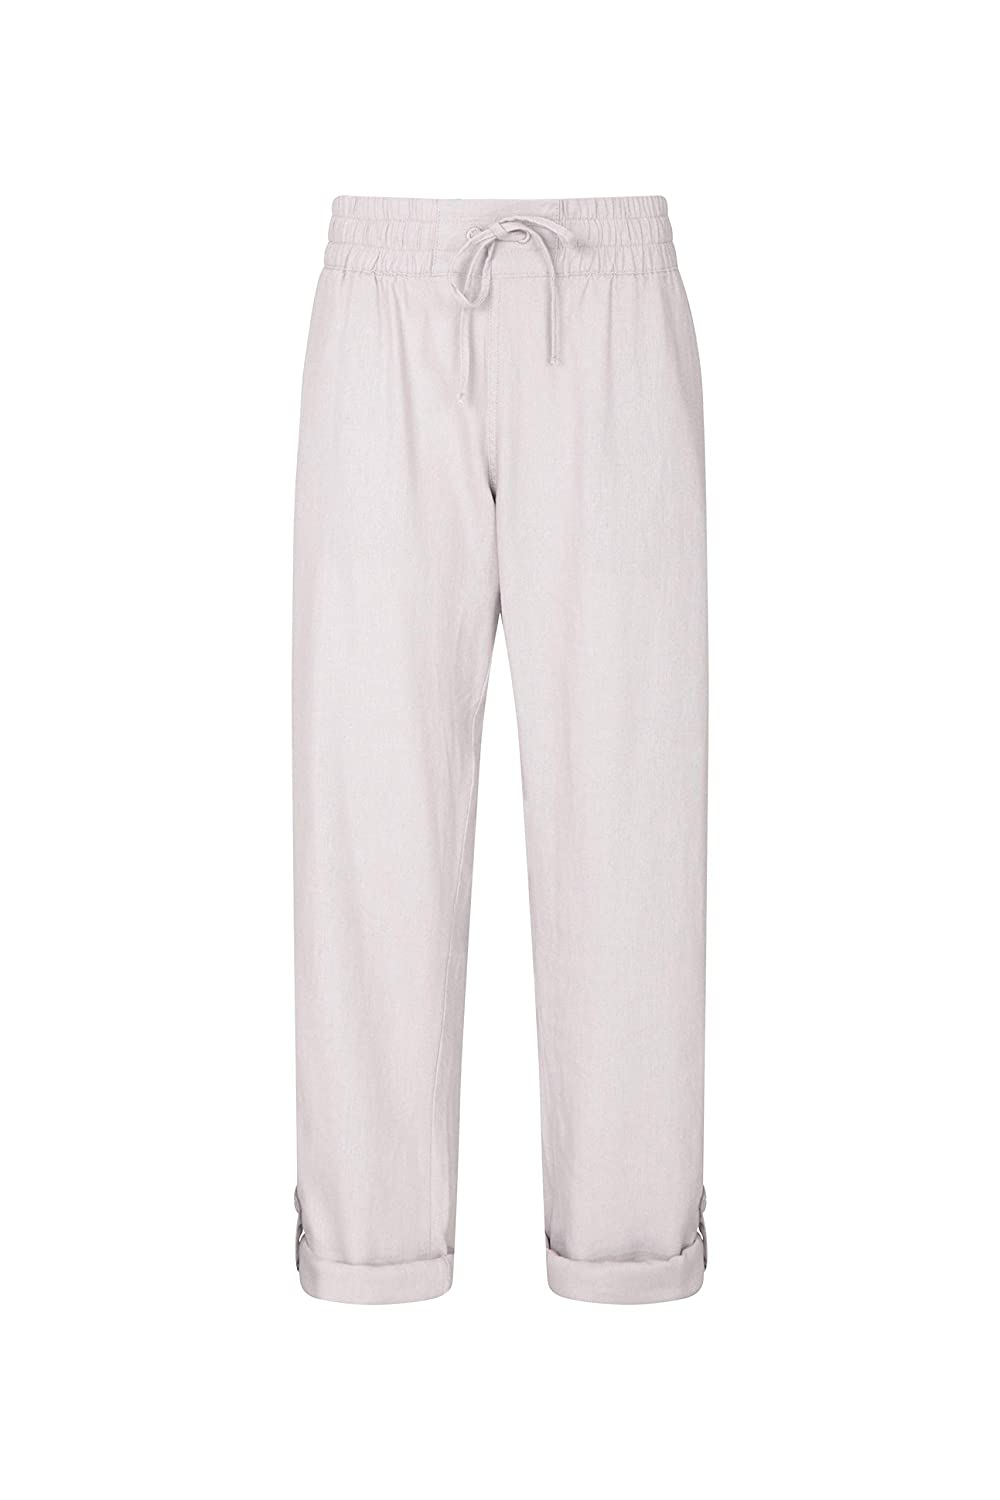 Best Clothing for Hiking Lightweight Ladies Summer Trousers Easy Care Mountain Warehouse Breeze Linen Blend Womens Trousers Outdoor Pockets Drawstring Pants